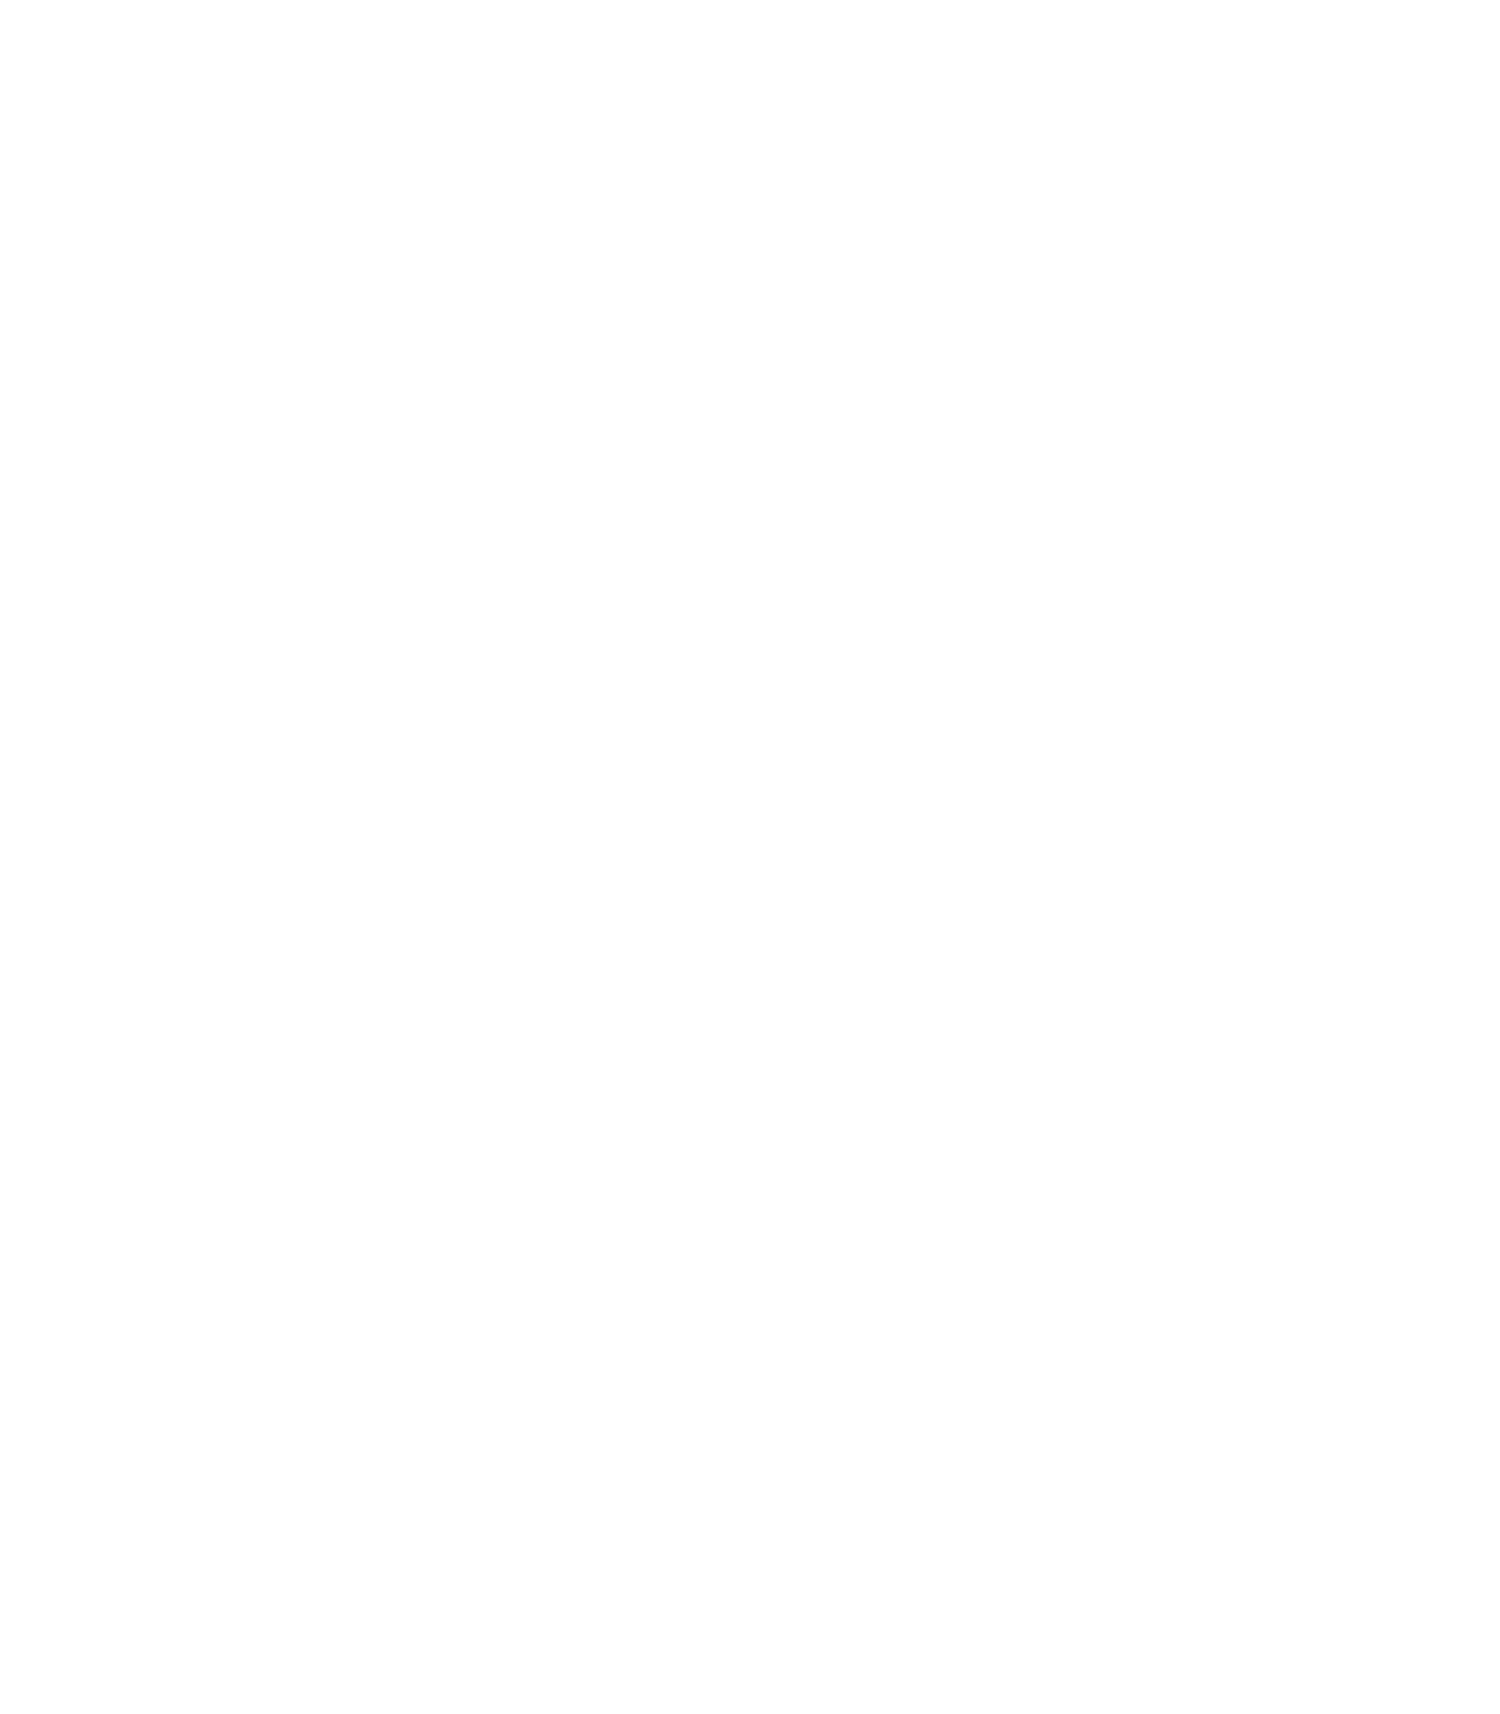 High Country Horticulture, INC.